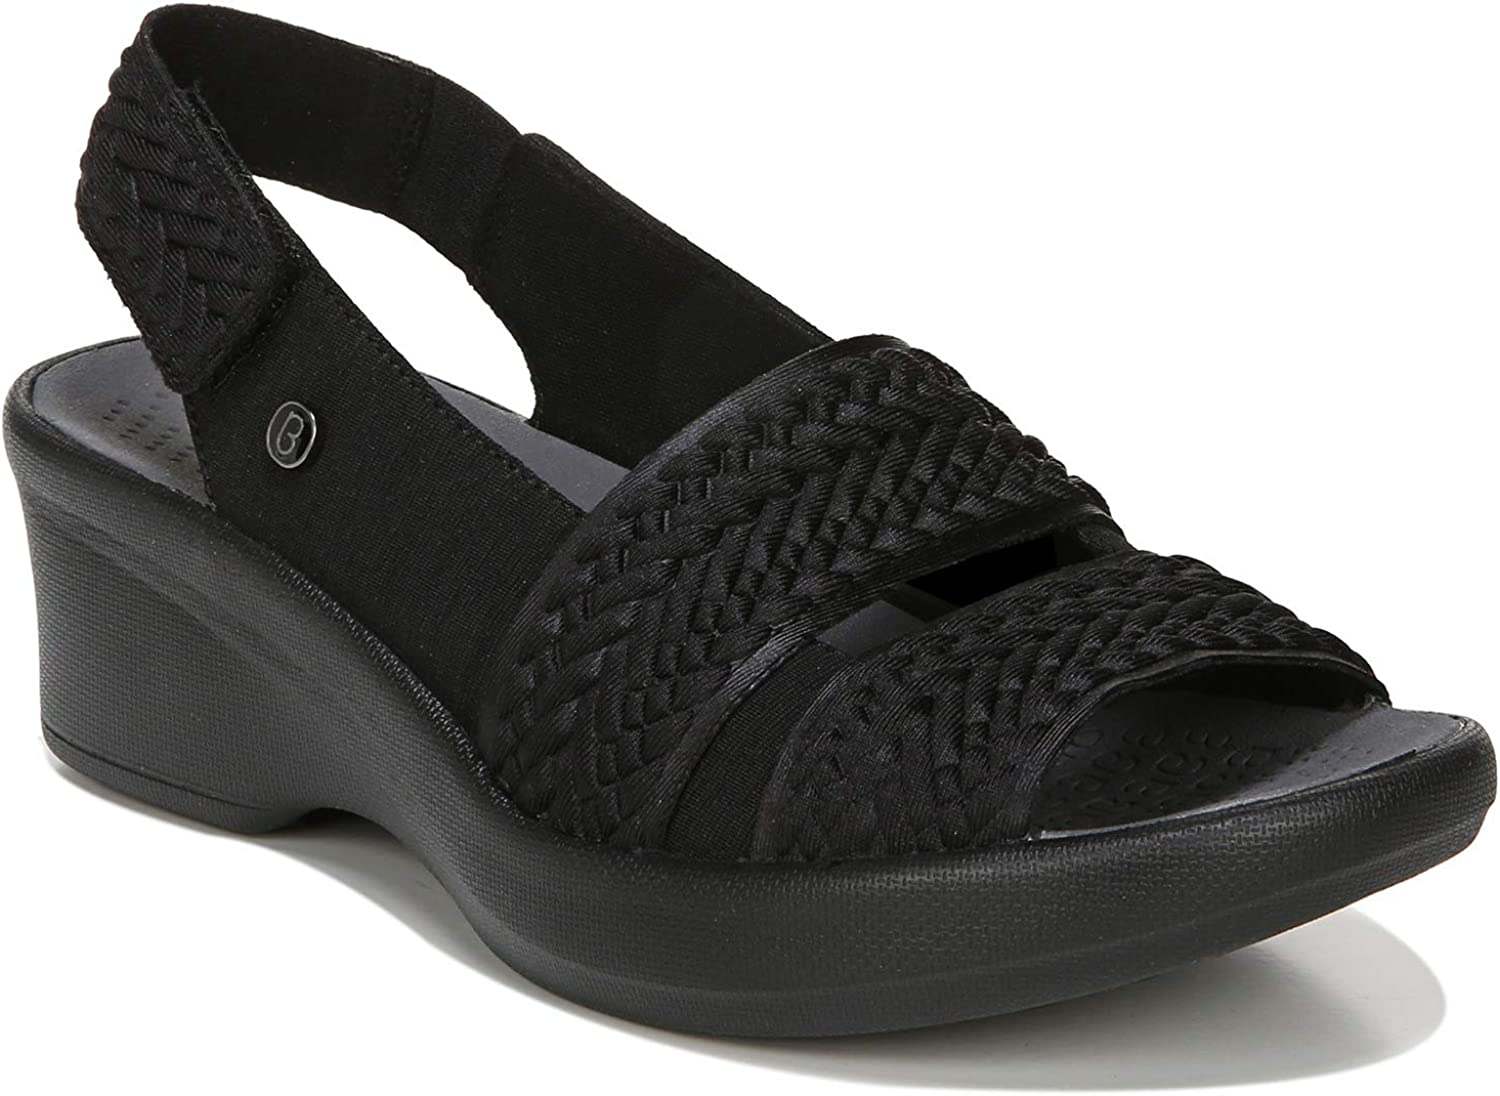 BZees Women's Fiona Slide Sandal